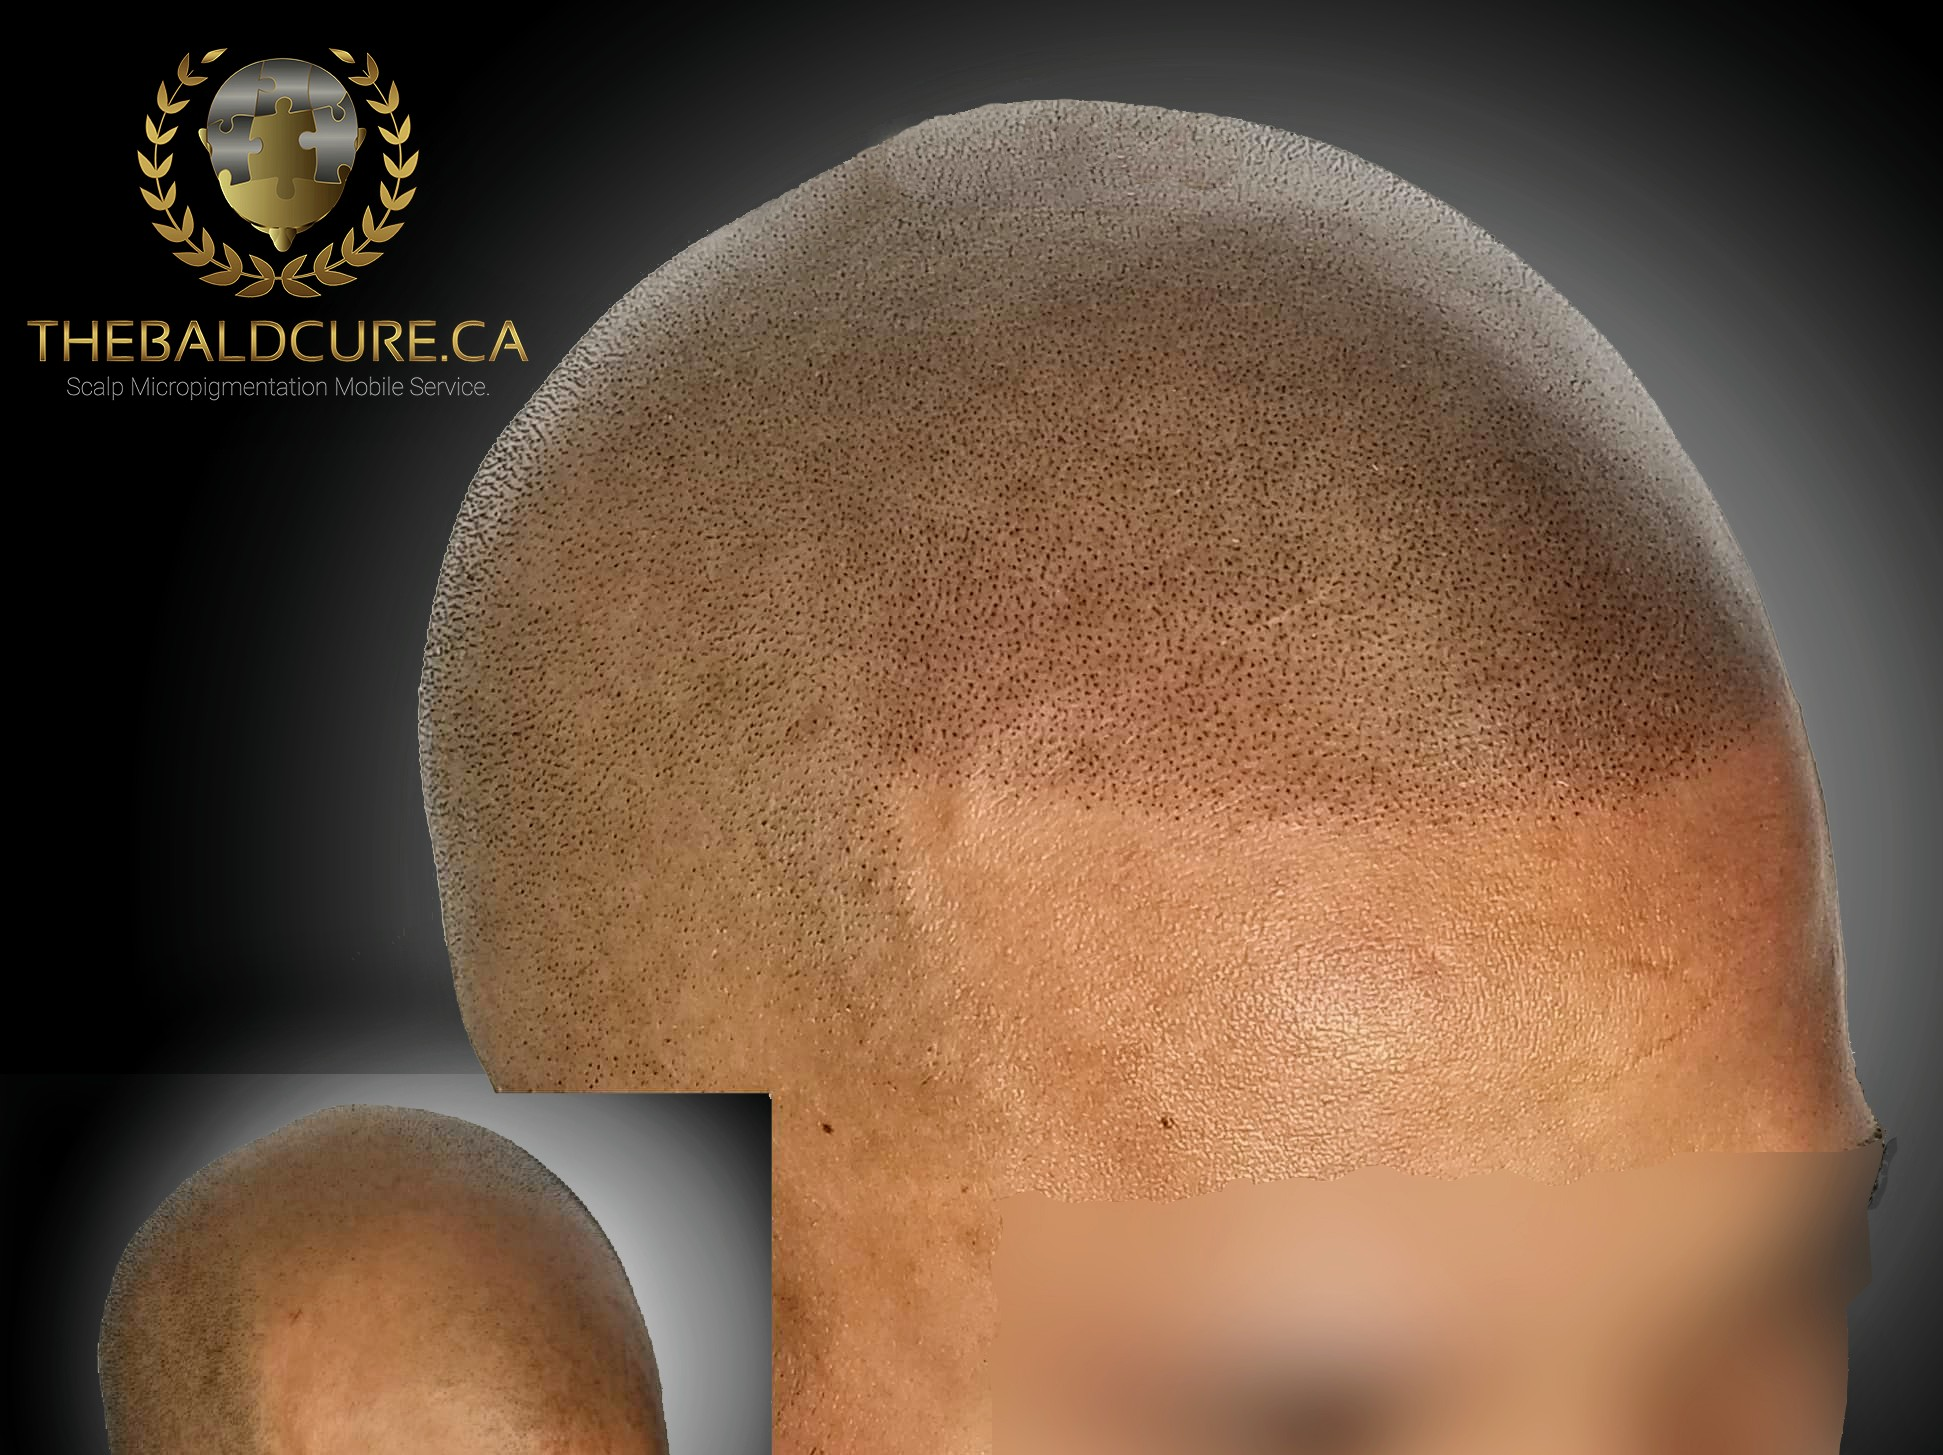 The Bald Cure Mobile Service In The Comfort Of Your Home We Beat Any Price 5_2-2 Pictures. Explore Our Photo Gallery